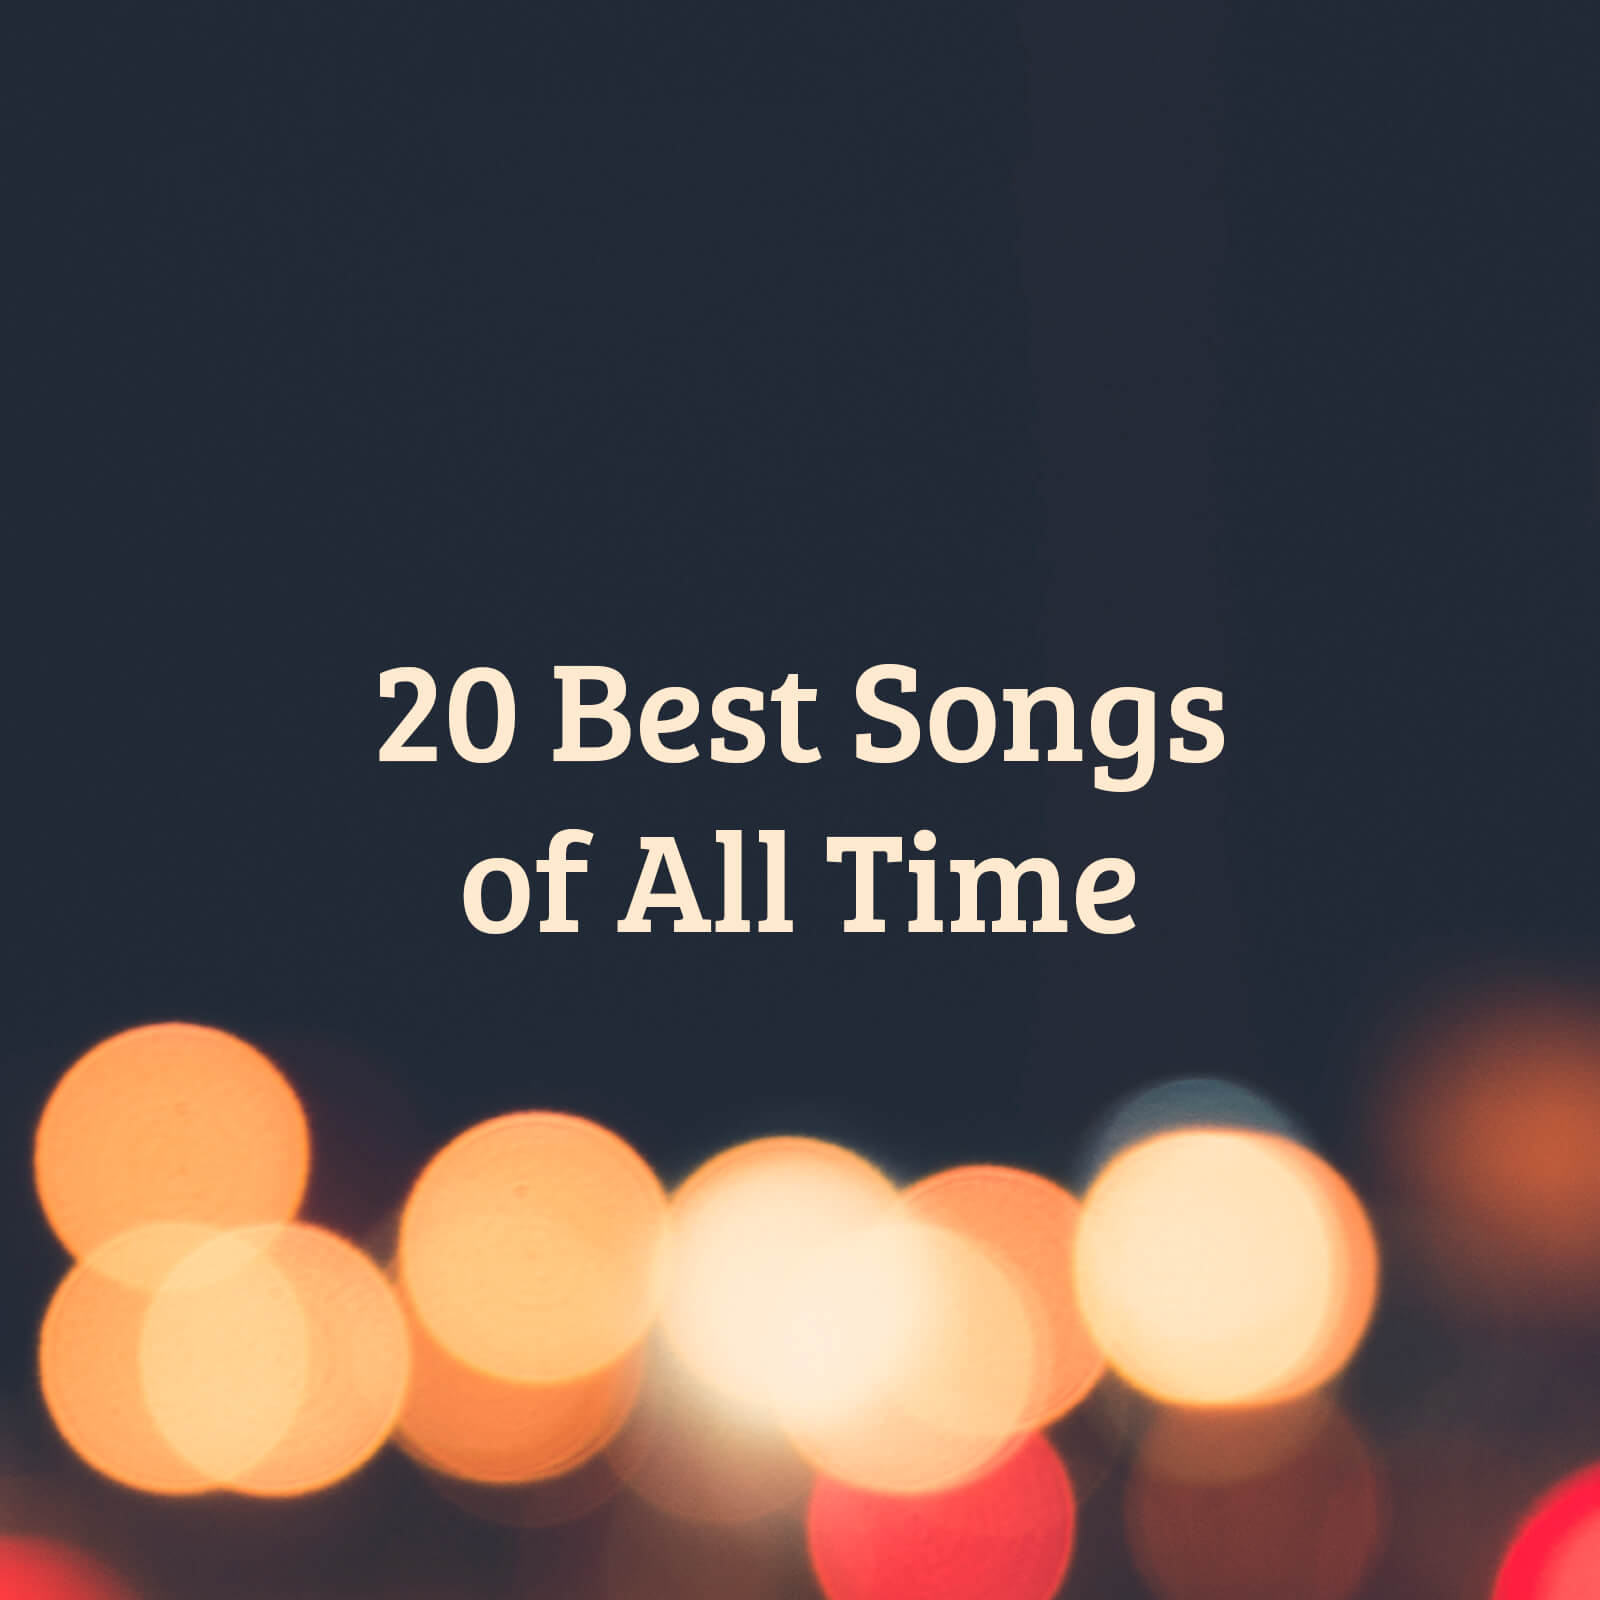 20 Best Songs of All Time